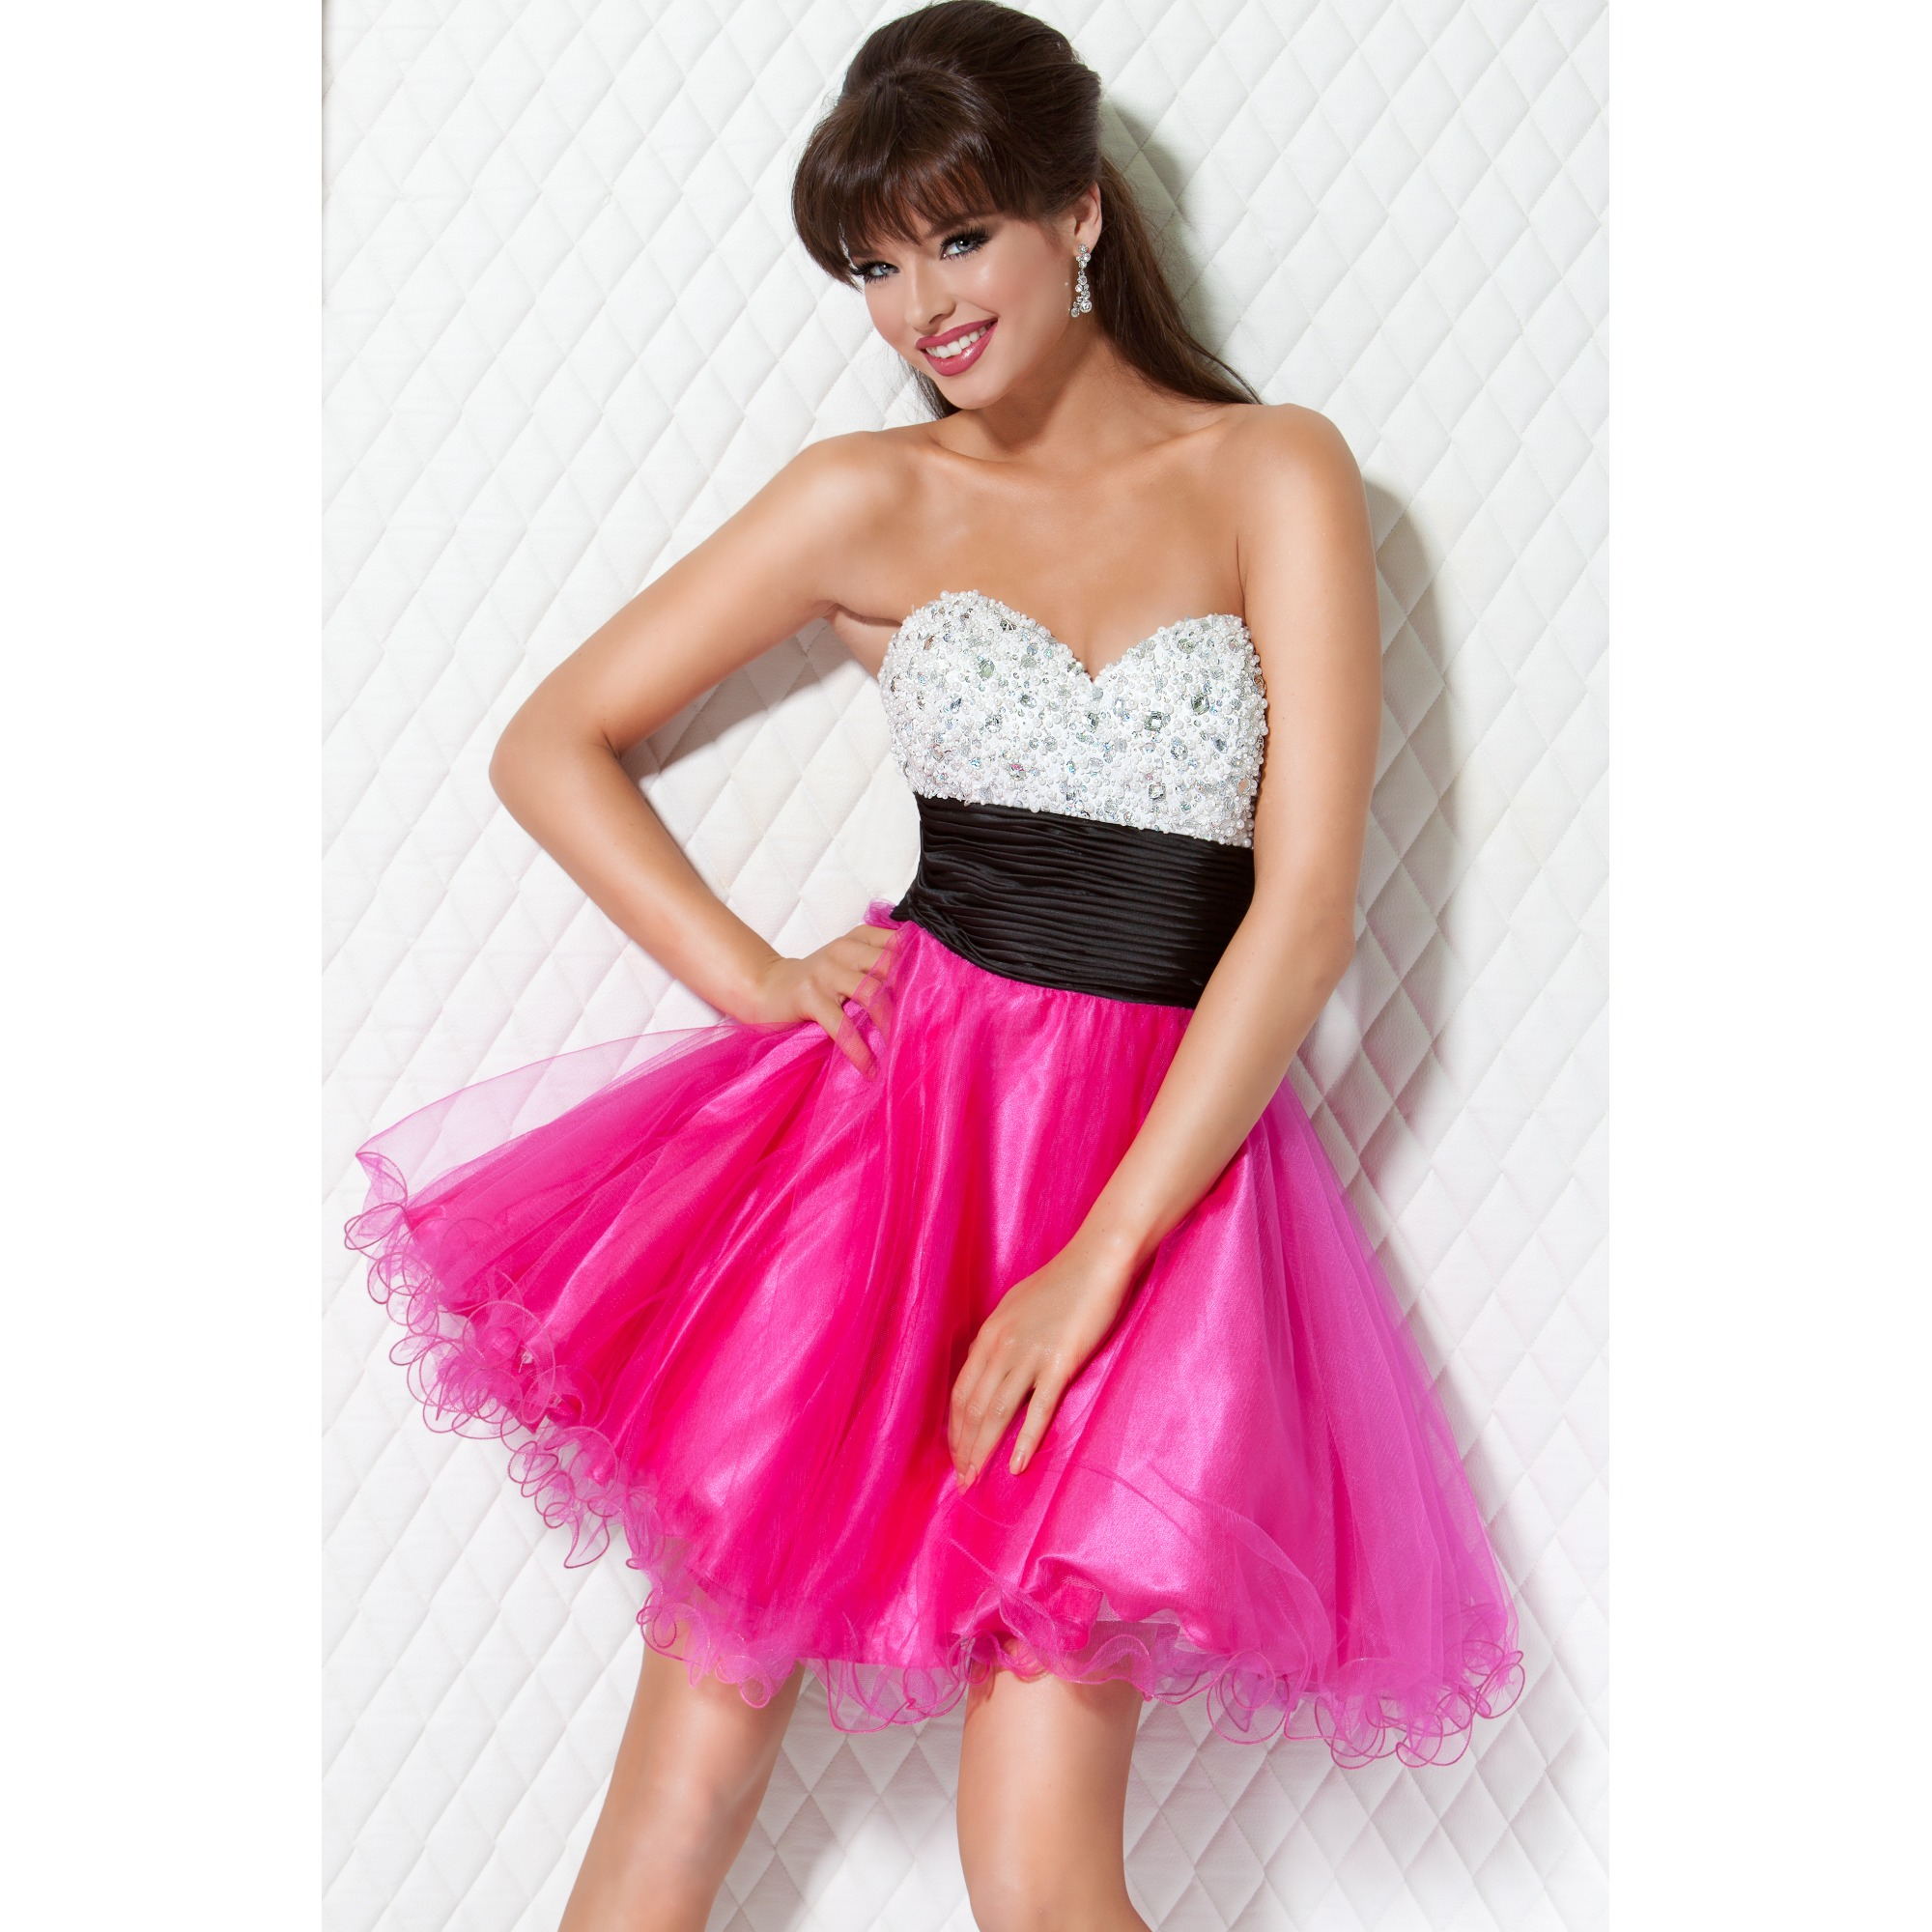 White And Fuchsia A Line Strapless Sweetheart Low Back Short Mini Cocktail Dresses With Black Ruches Waaist